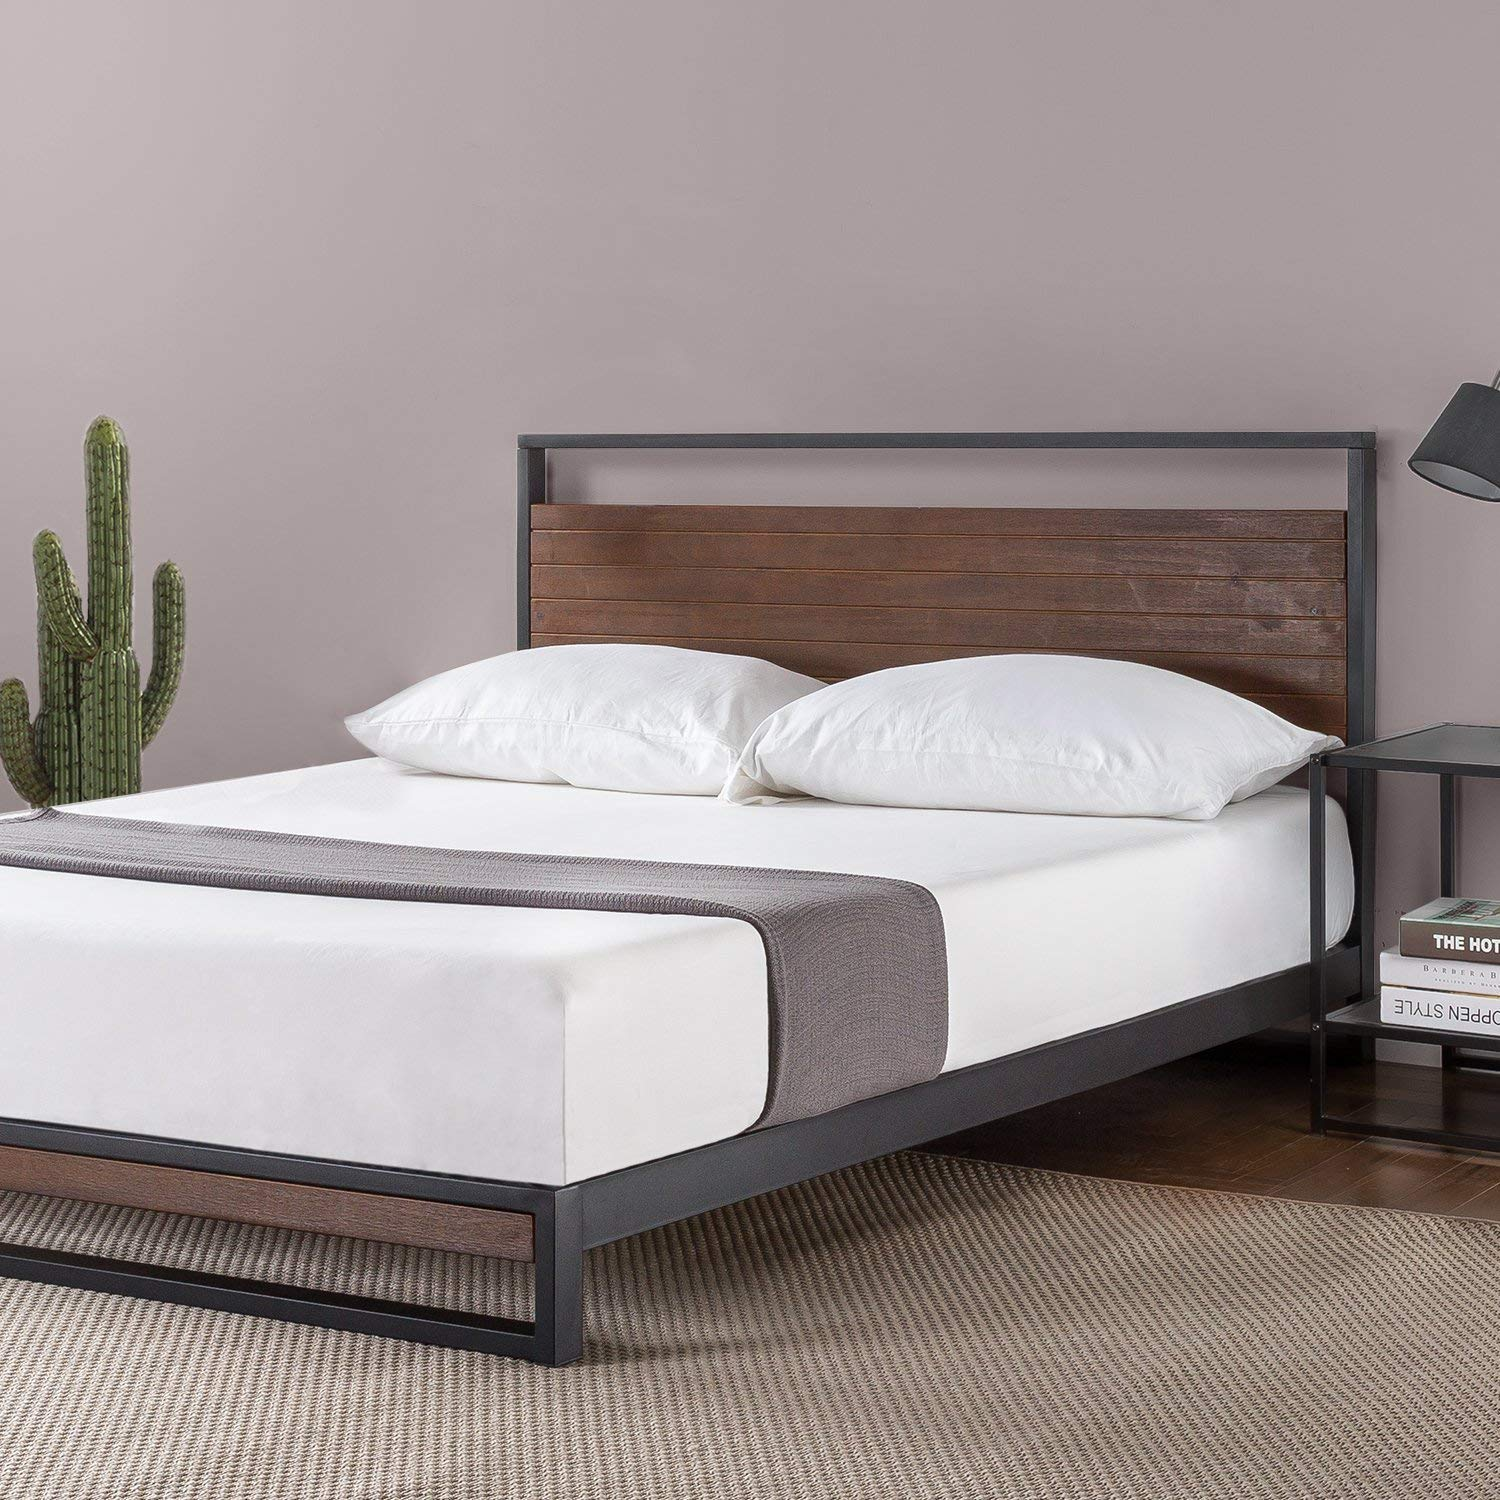 Japanese Platform Bed Frames Practicality Style And Pure